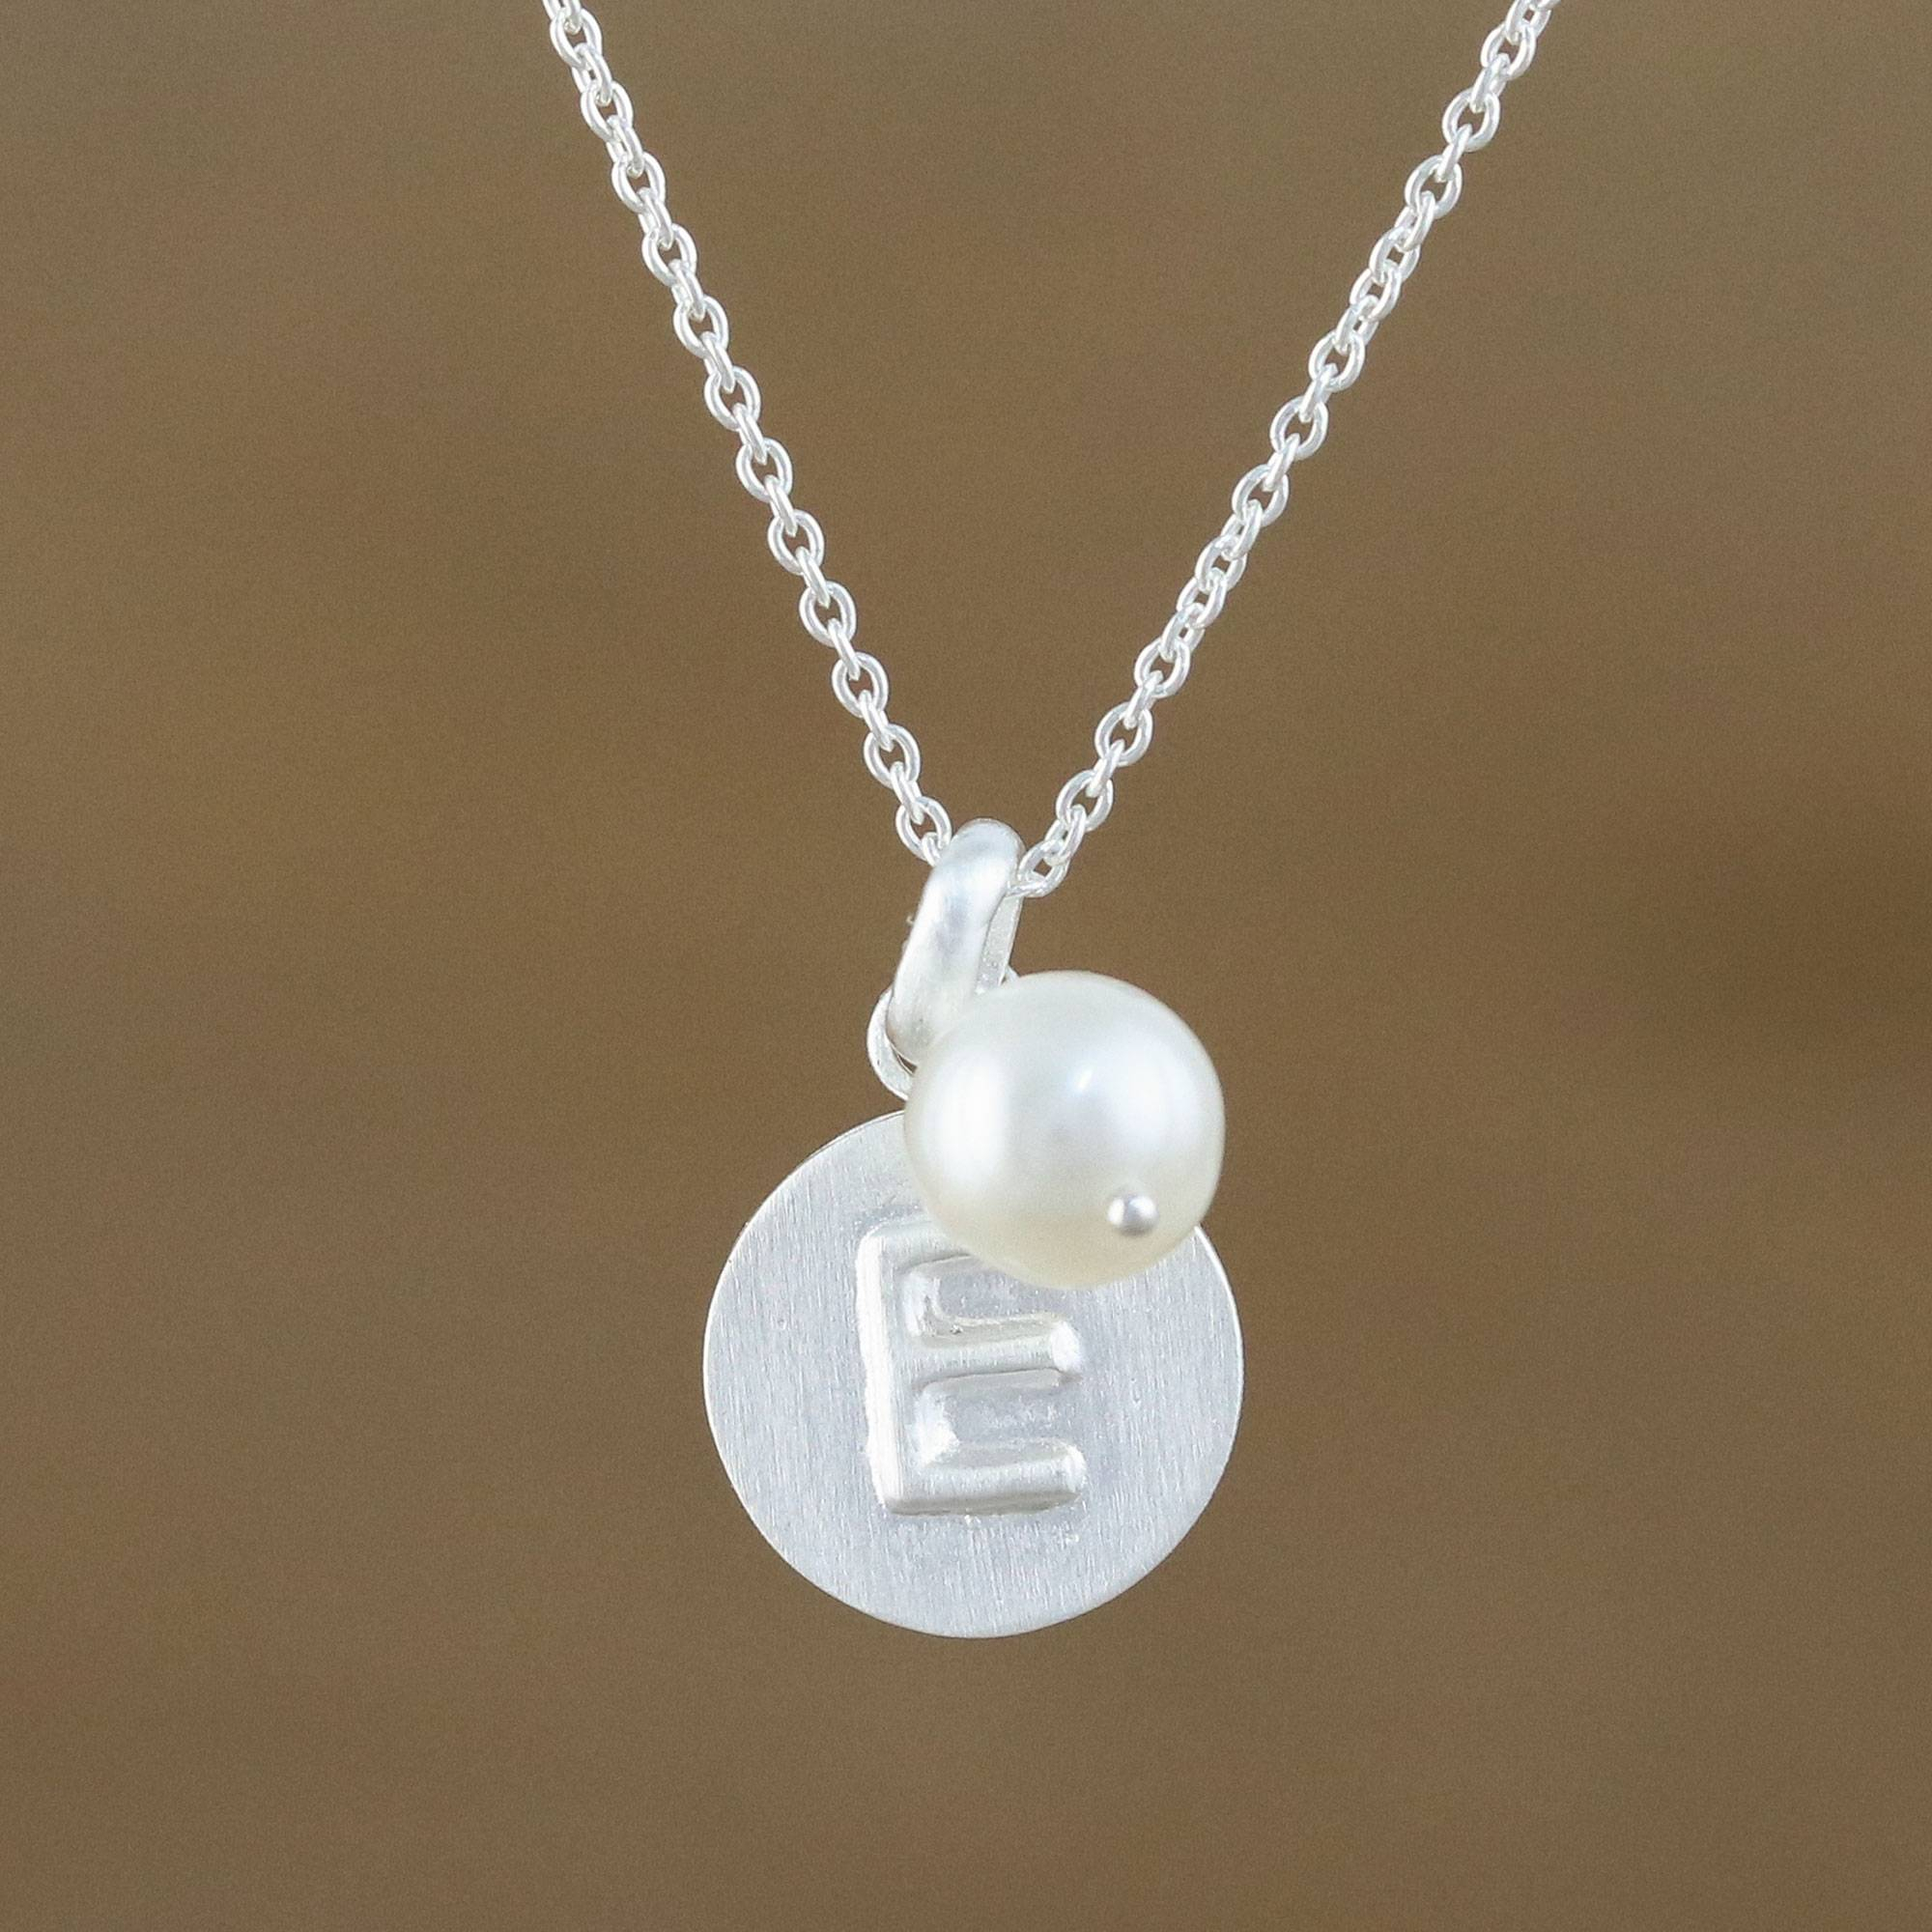 Cultured Pearl Letter E Pendant Necklace From Thailand, 'fabulous E' Pertaining To Most Up To Date Shimmering Knot Pendant Necklaces (Gallery 2 of 25)